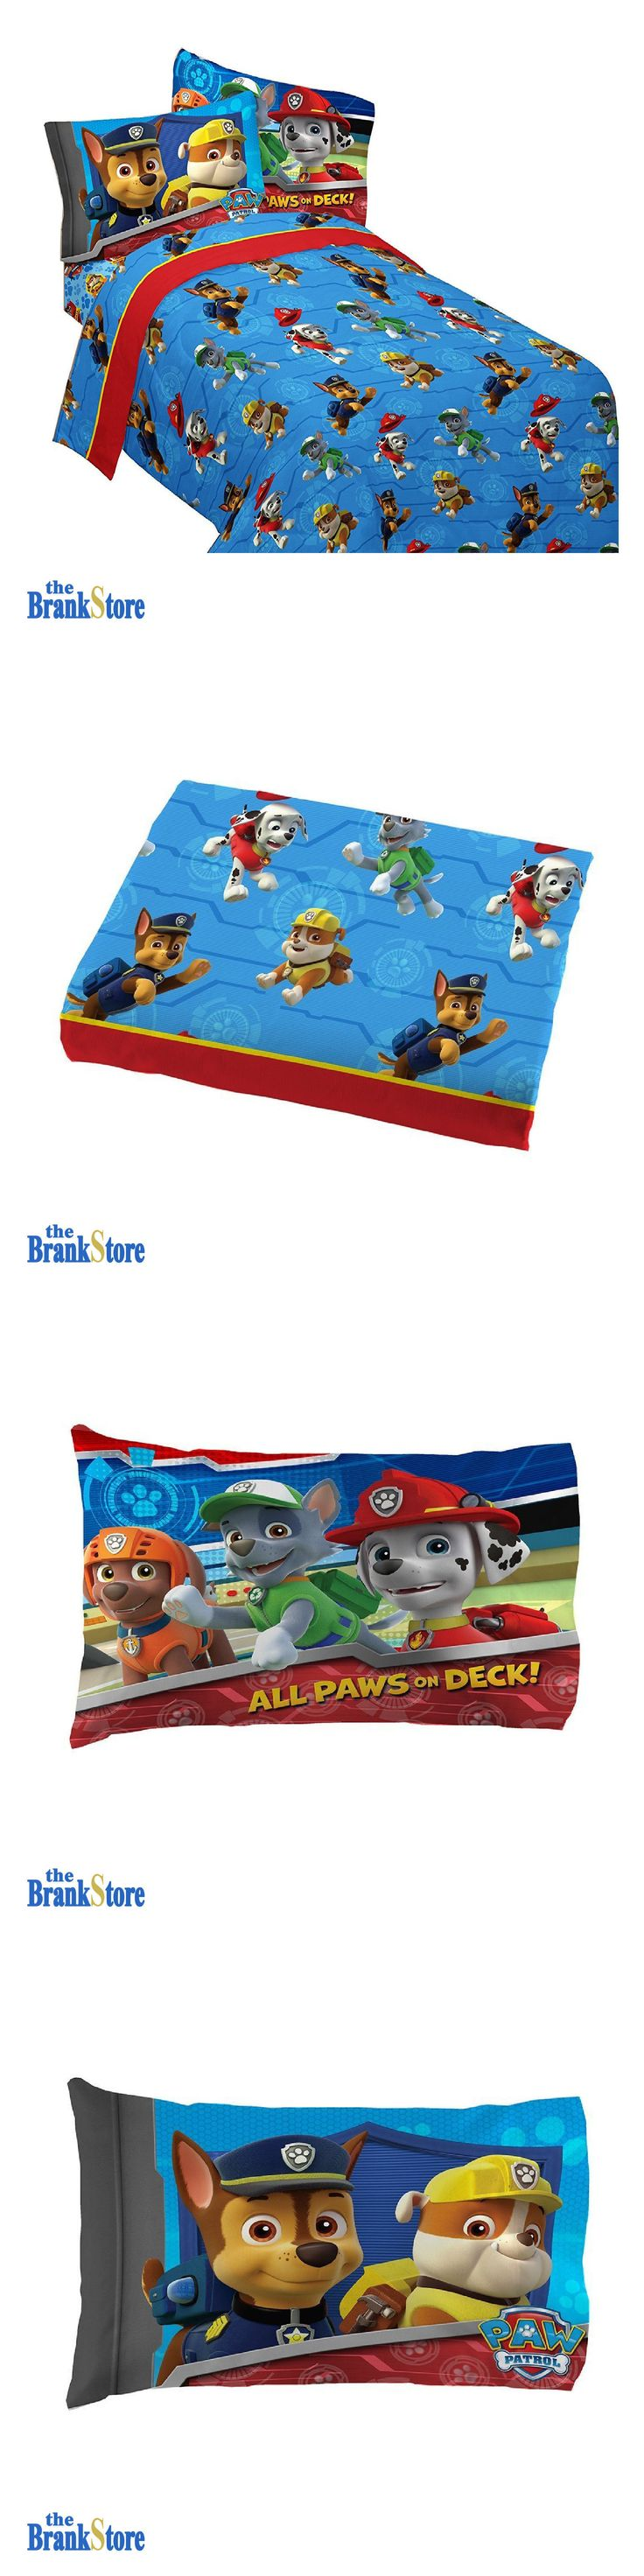 Other TV Movie Character Toys 2622: Kids Bedroom Sheets Paw Patrol Twin Bedding Set Ruff Ruff Rescue Comfort Sheet -> BUY IT NOW ONLY: $600 on eBay!